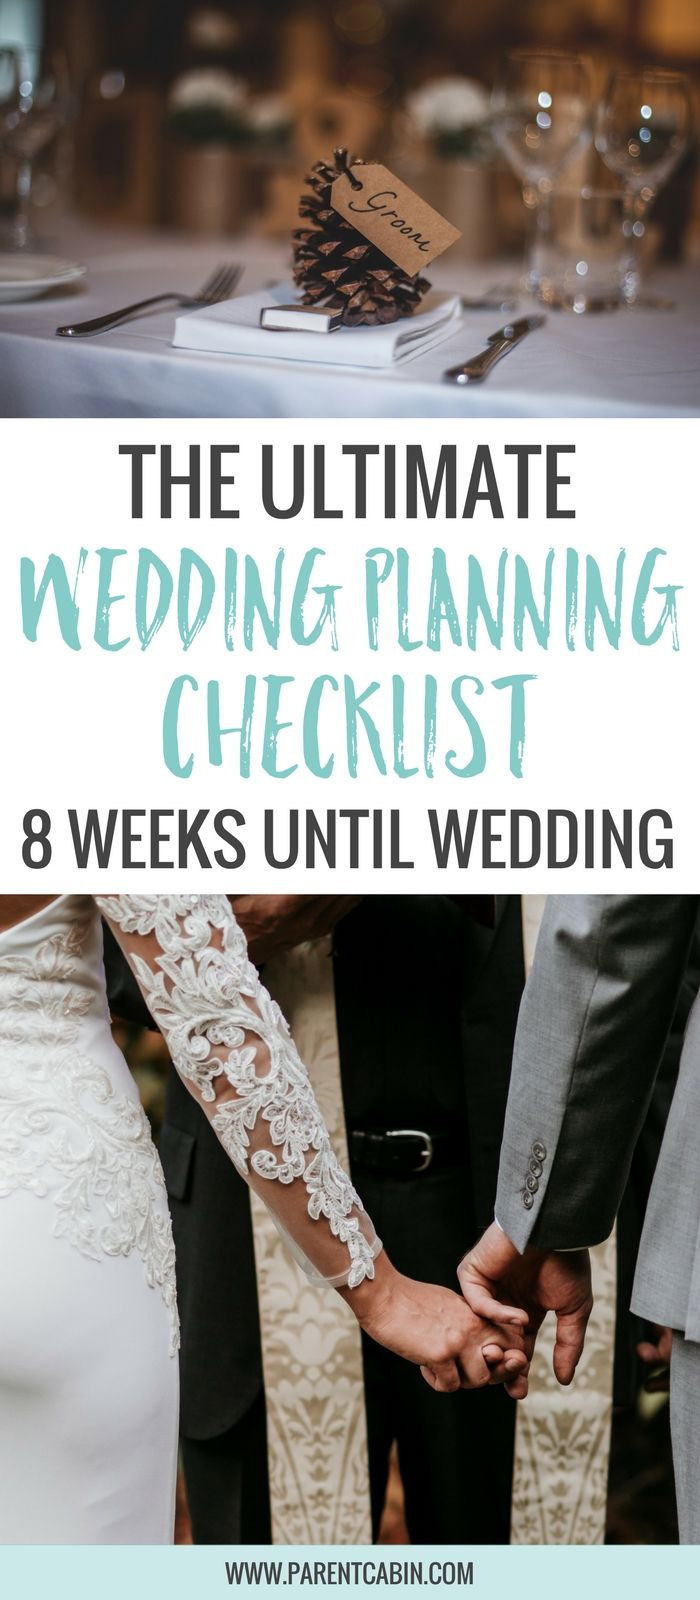 If you're looking at a short wedding timeline, you'll have to stay focused. But this wedding planning checklist will help! The most important thing is to stay flexible.